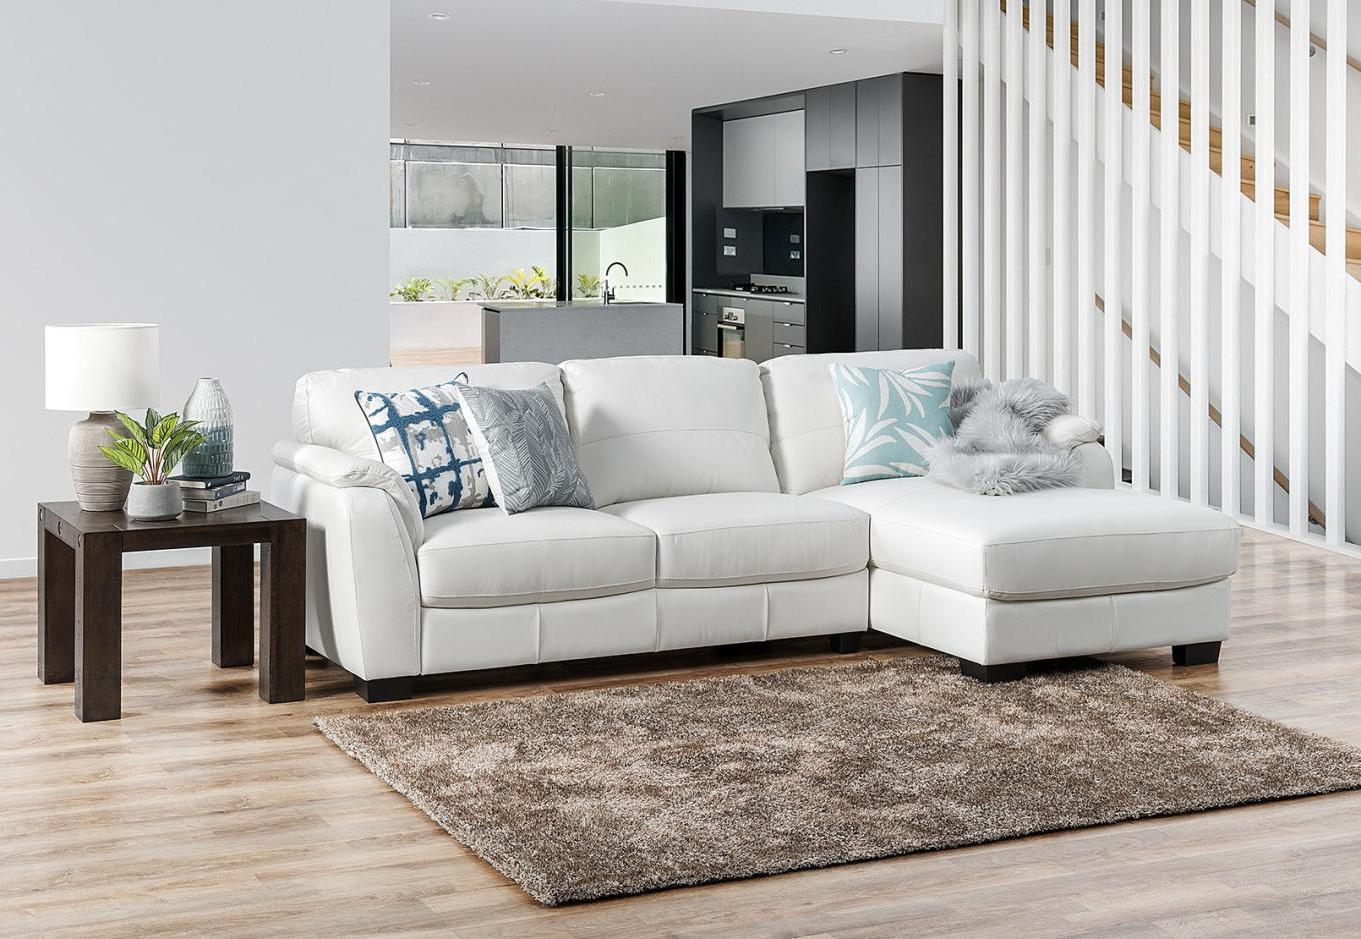 Marissa Leather 3 Seater Chaise White – Sofas, Lounges & Couches Regarding Widely Used Marissa Sofa Chairs (View 11 of 20)